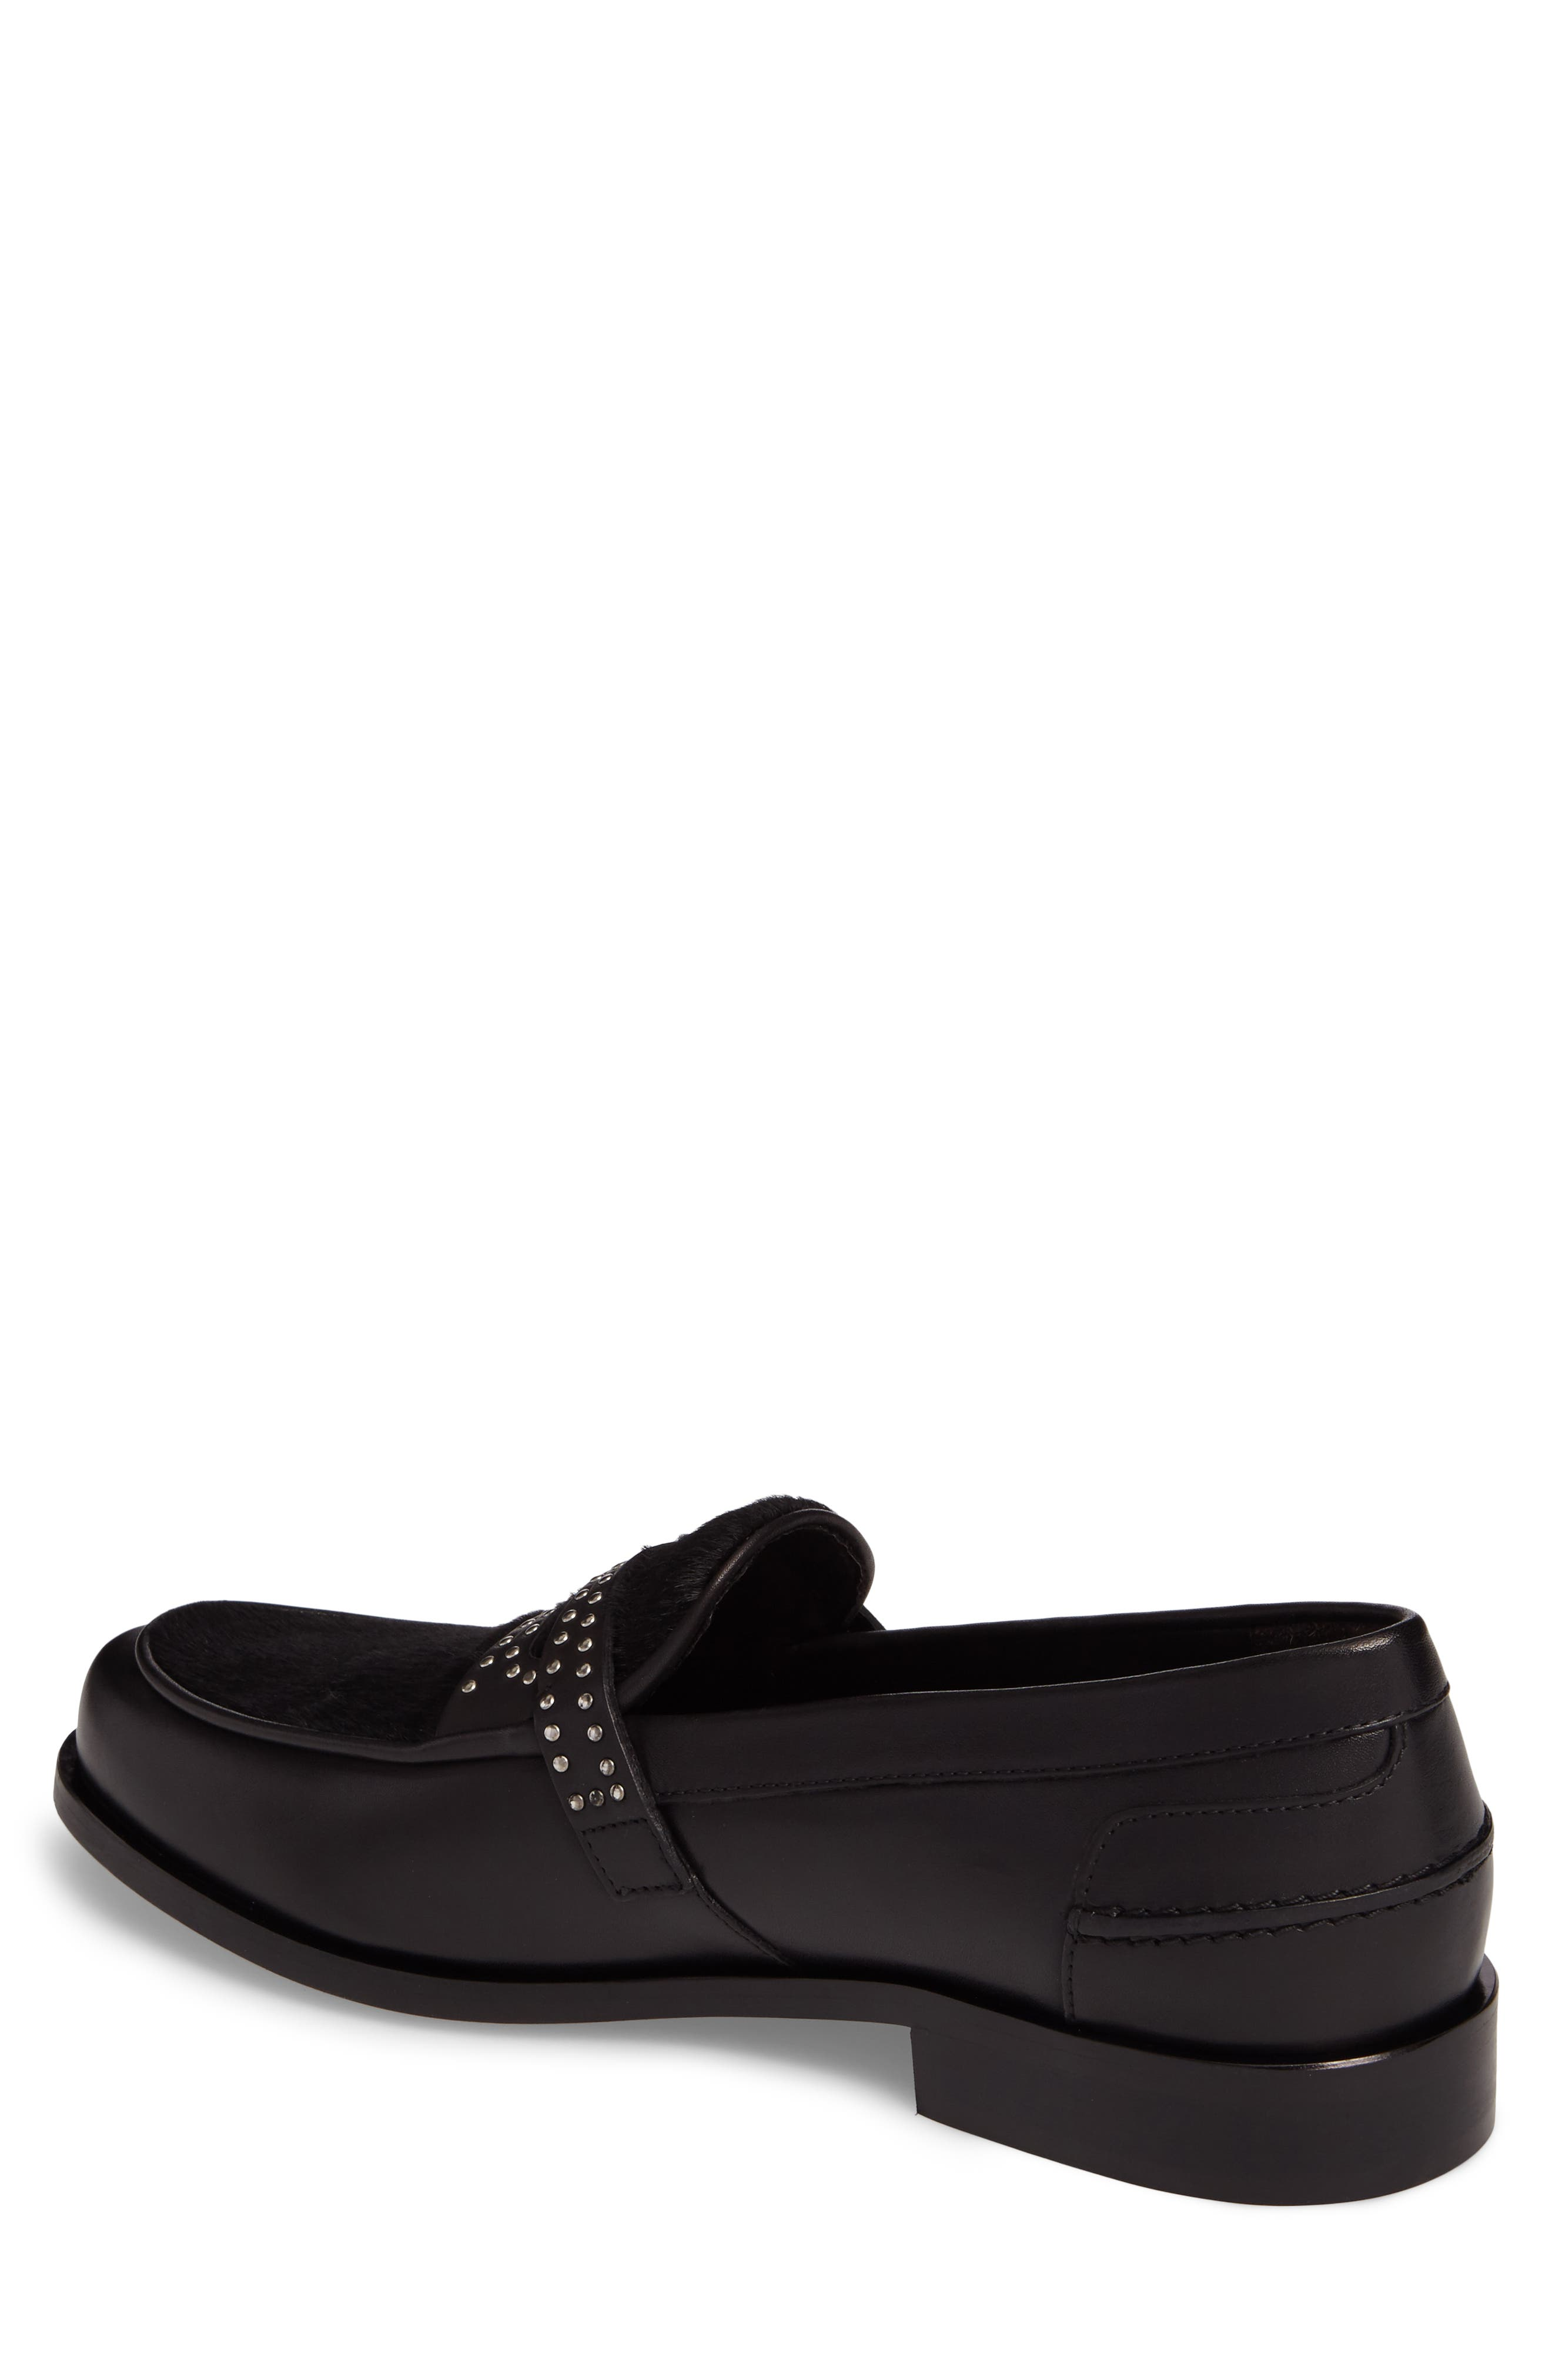 Sawyer Penny Loafer,                             Alternate thumbnail 2, color,                             001